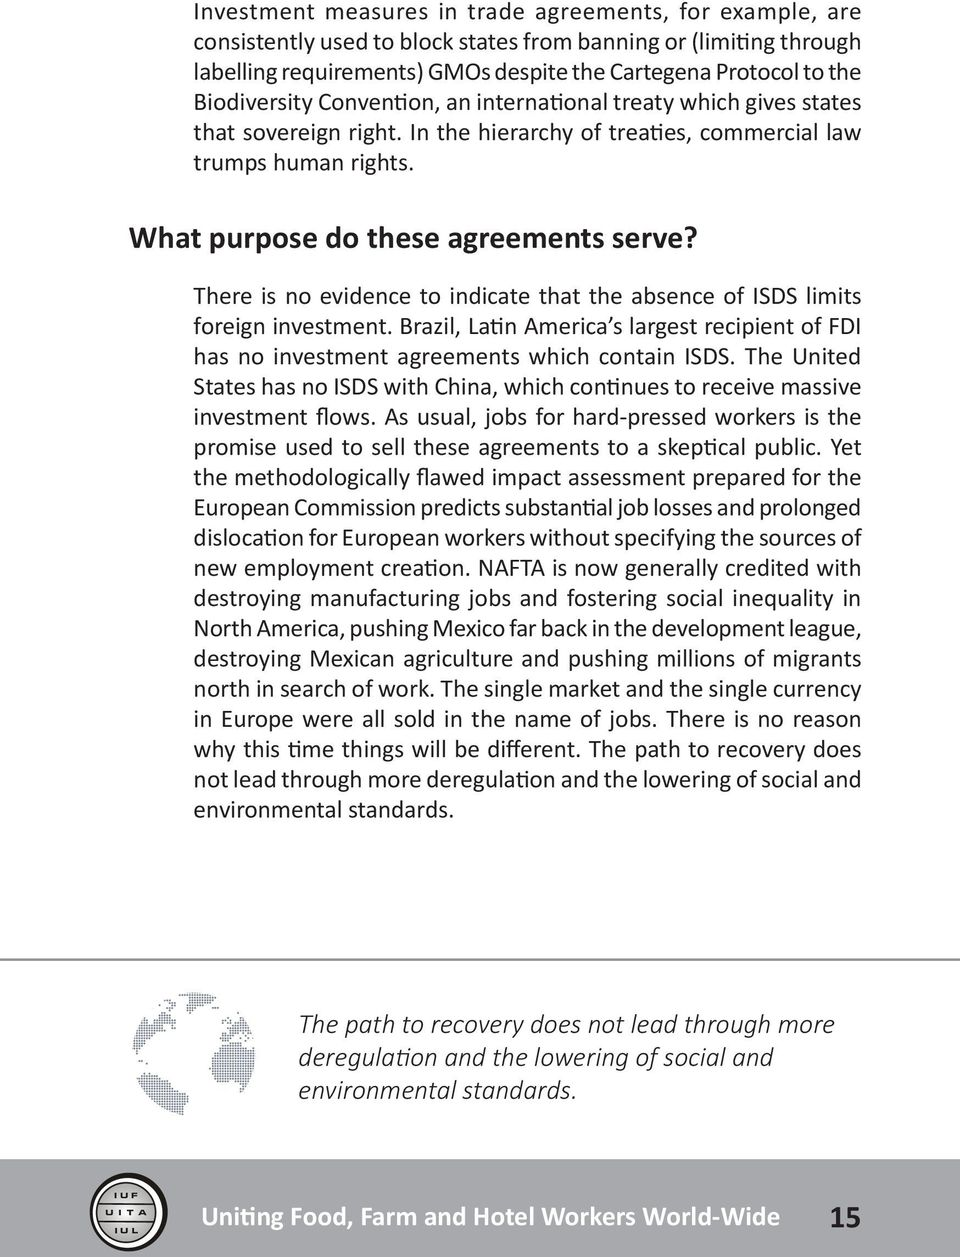 There is no evidence to indicate that the absence of ISDS limits foreign investment. Brazil, Latin America s largest recipient of FDI has no investment agreements which contain ISDS.